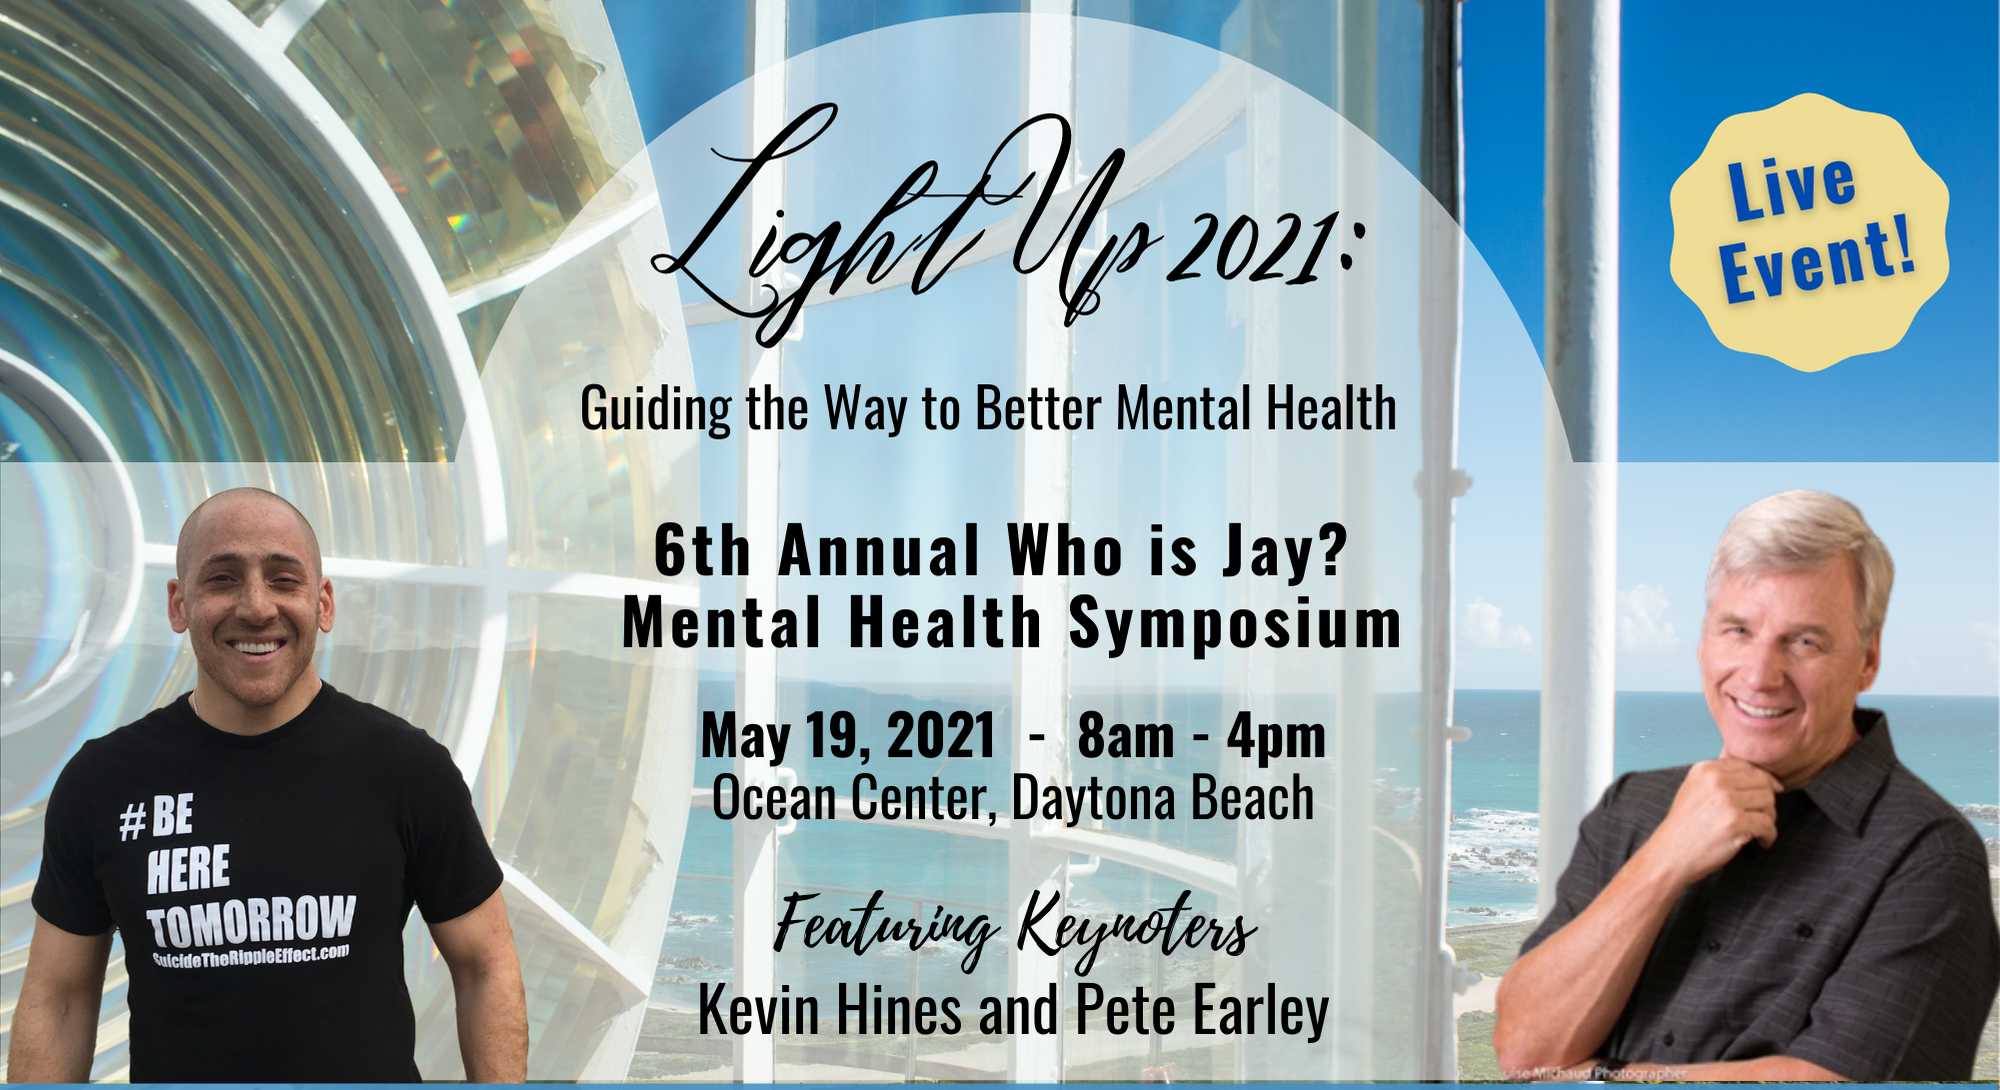 6th Annual Who is Jay? Mental Health Symposium